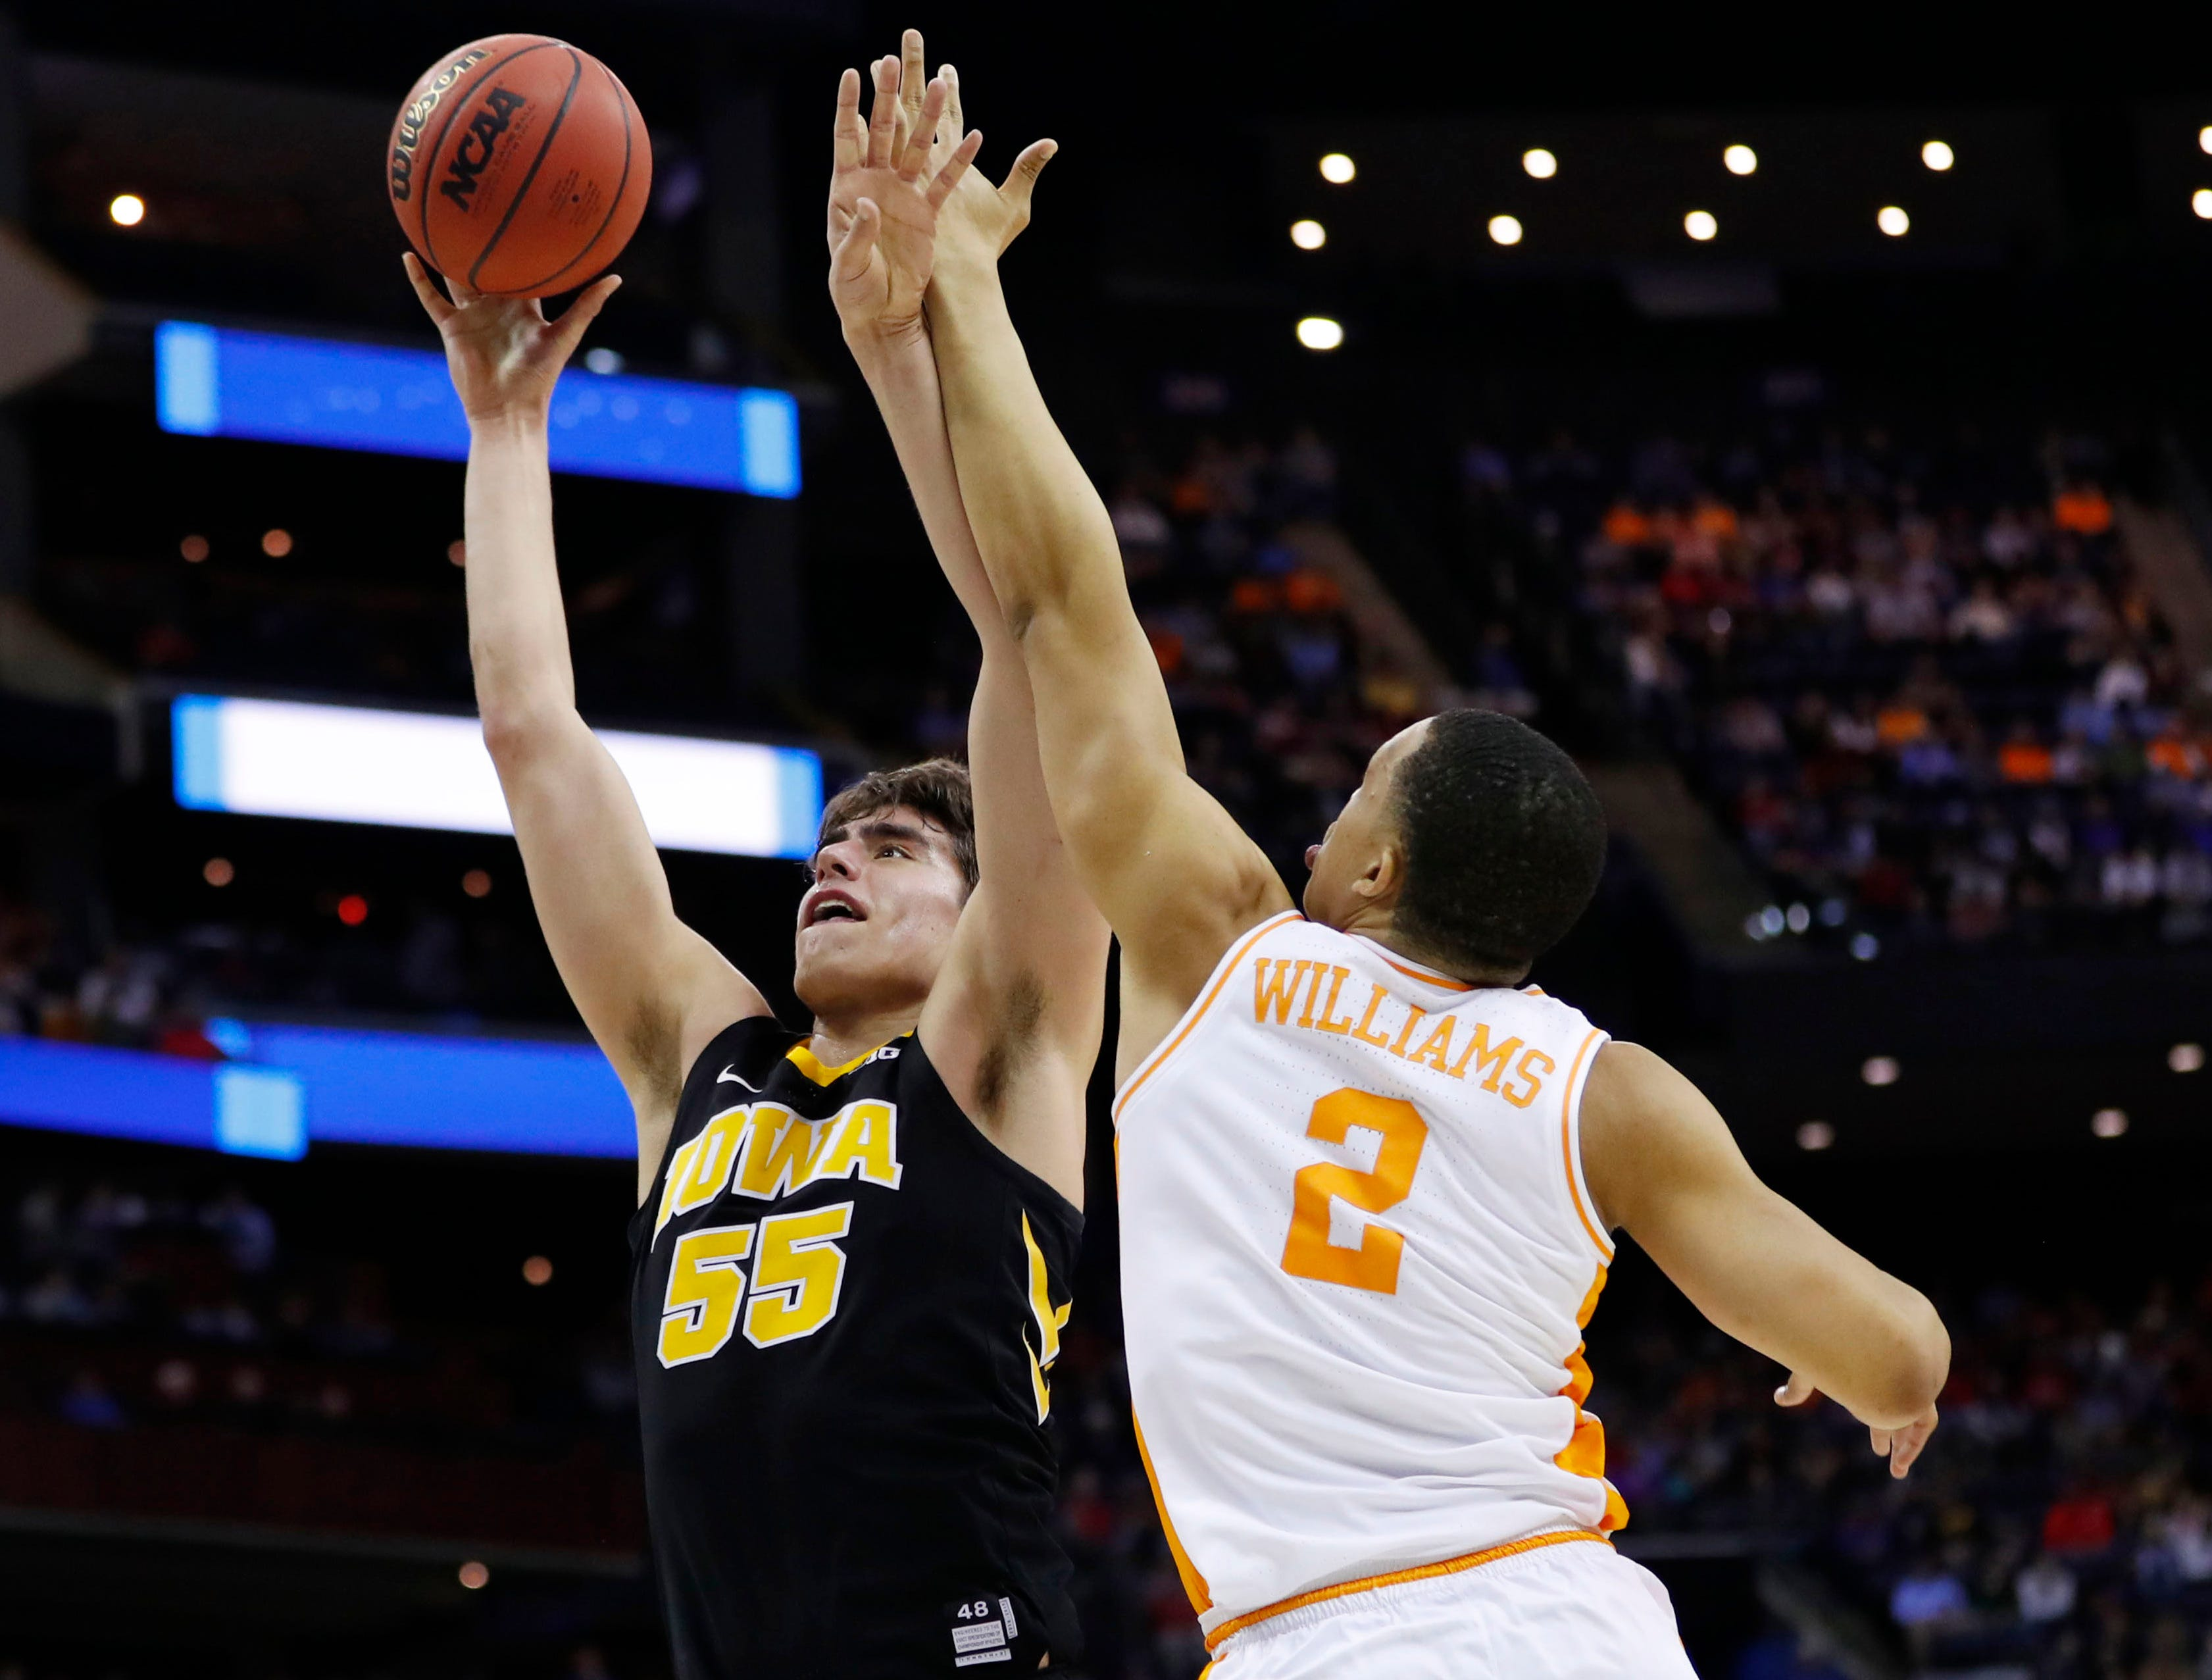 Iowa Hawkeyes forward Luka Garza (55) goes to the basket defended by Tennessee Volunteers forward Grant Williams (2) in the first half in the second round of the 2019 NCAA Tournament at Nationwide Arena.